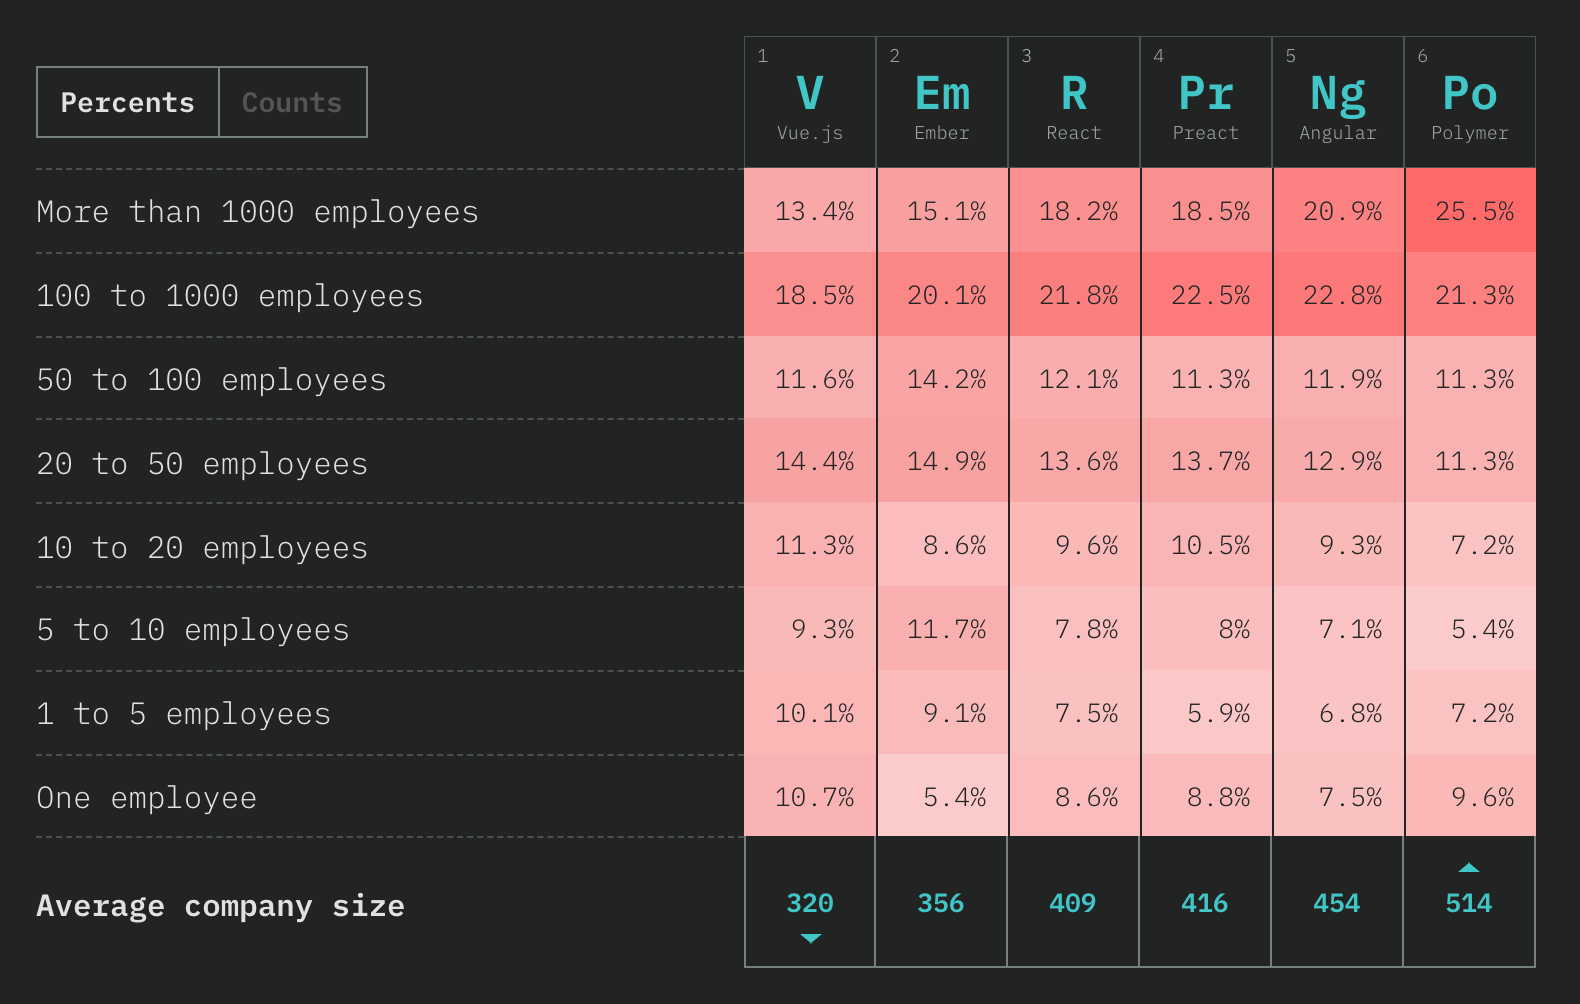 chart showing company sizes for Vue.js, Ember, React, Preact, Angular, Polymer